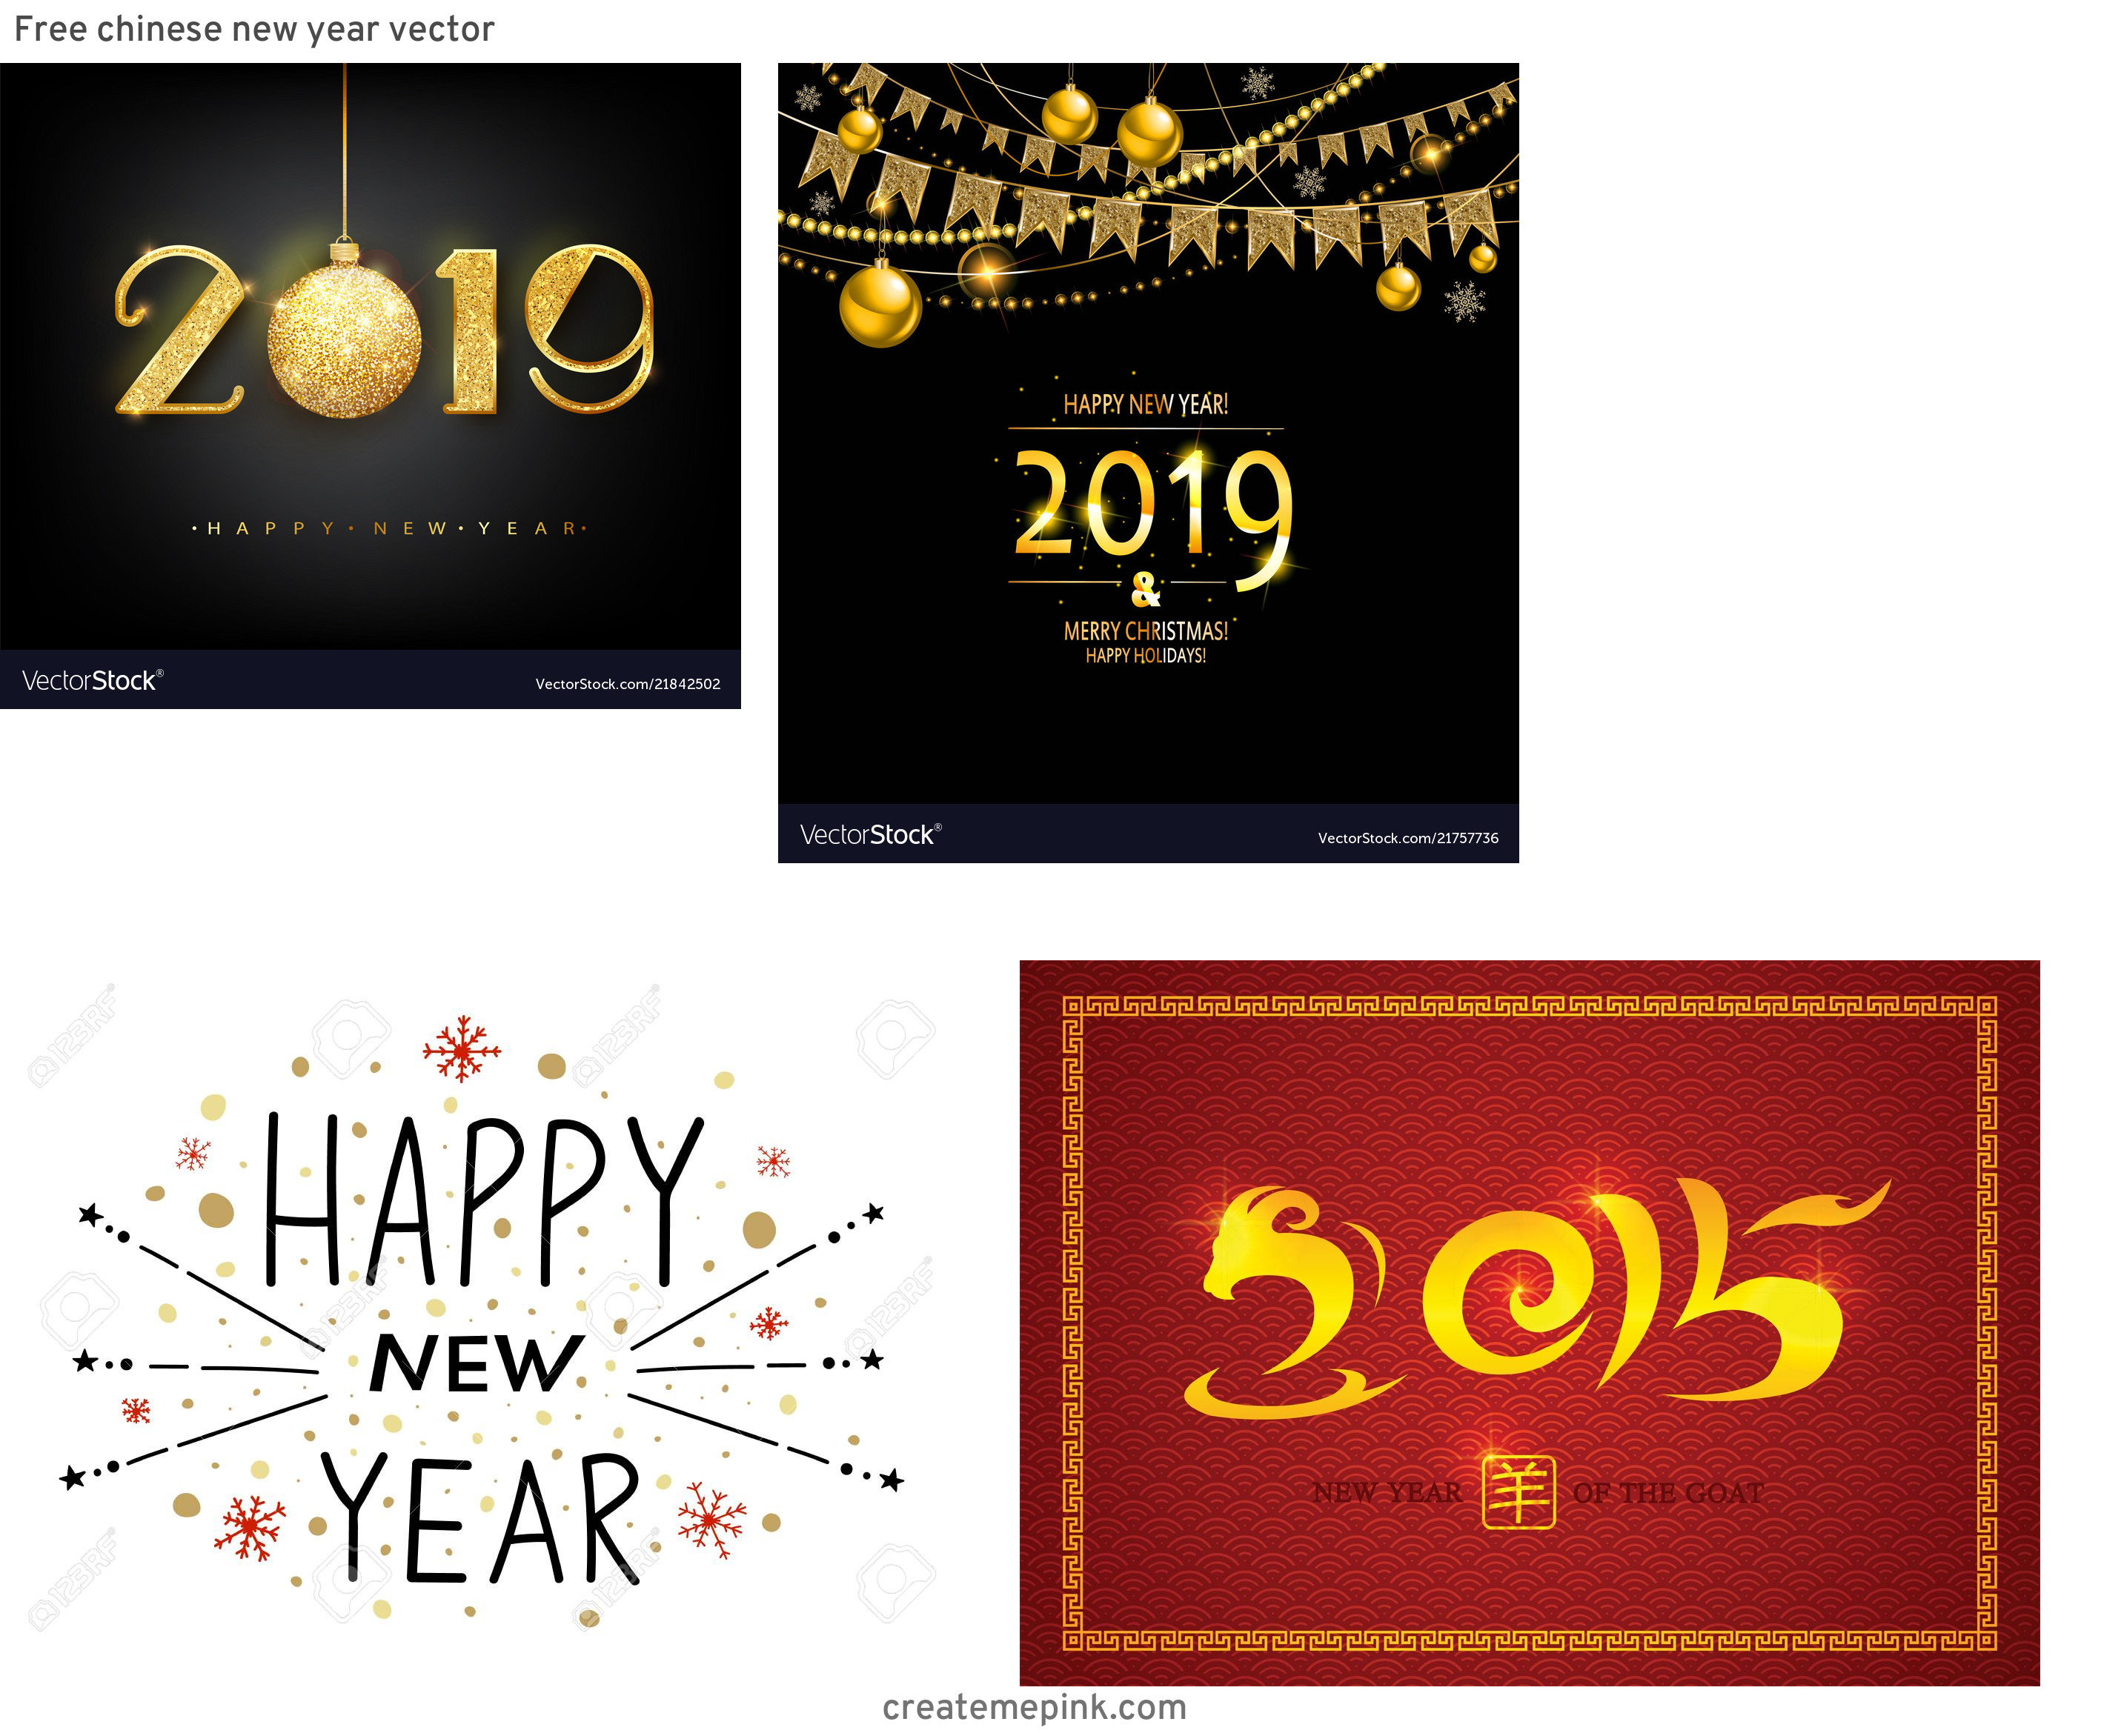 Free New Year Vector: Free Chinese New Year Vector